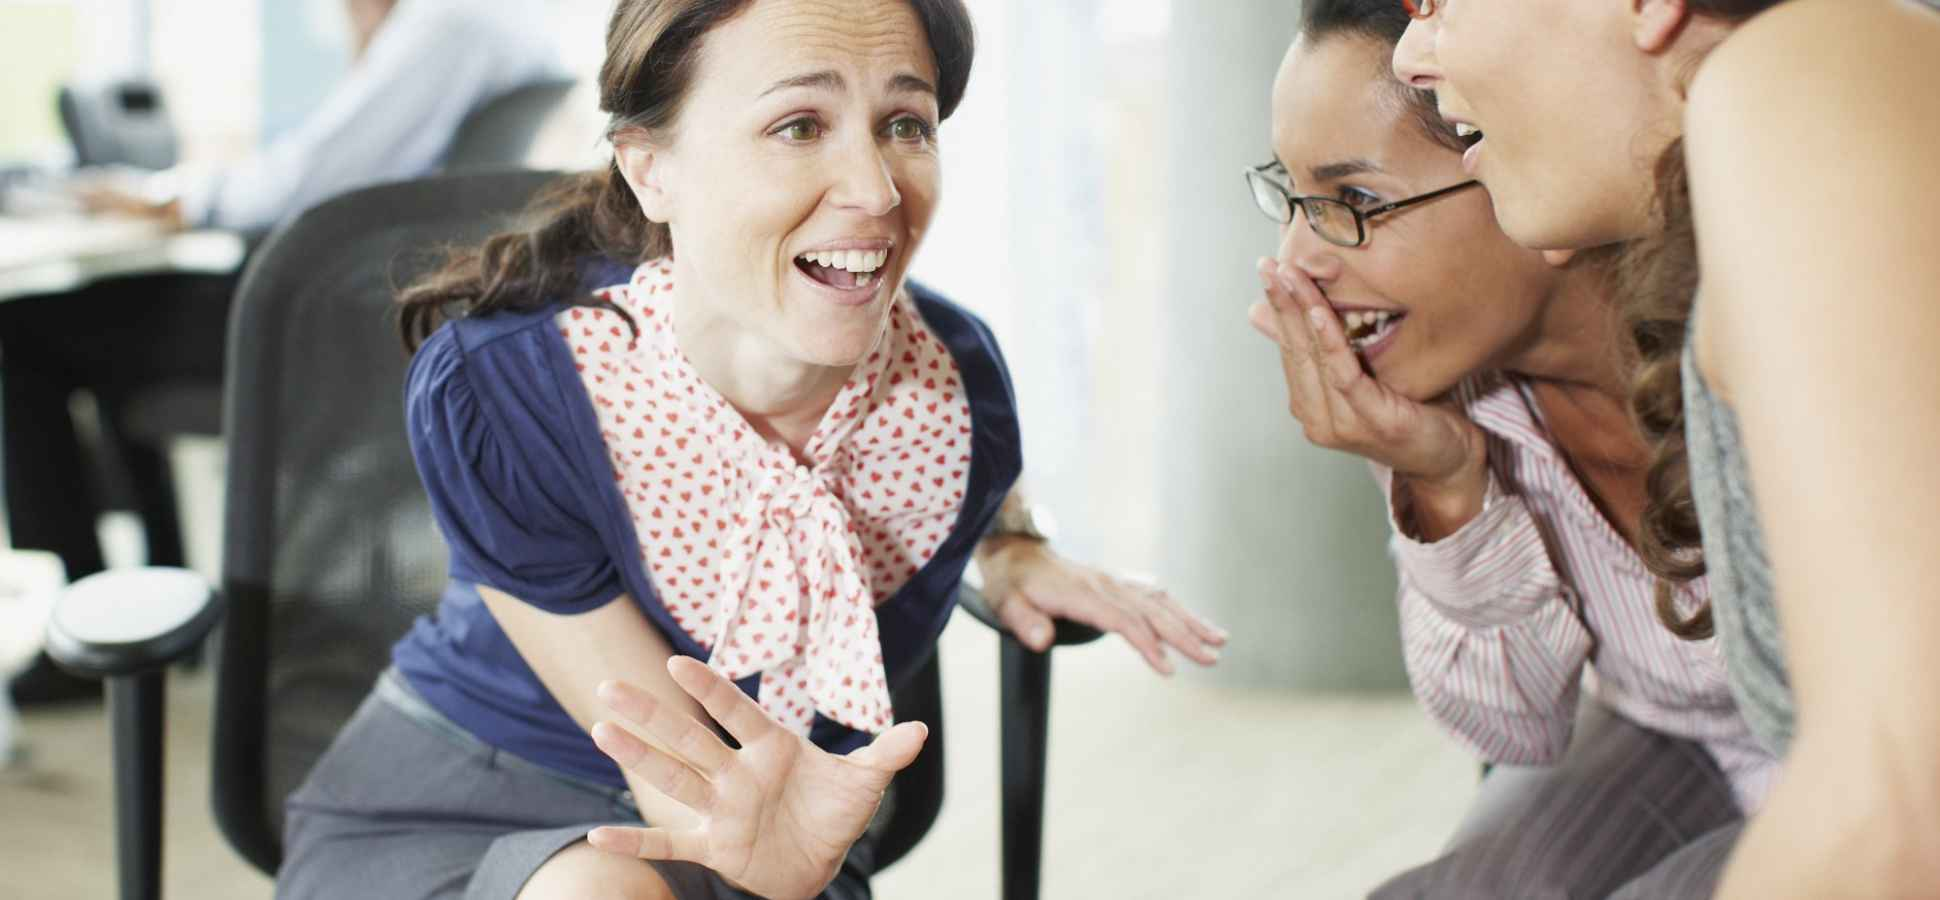 Want To Make Your Team More Productive? Let Them Gossip More